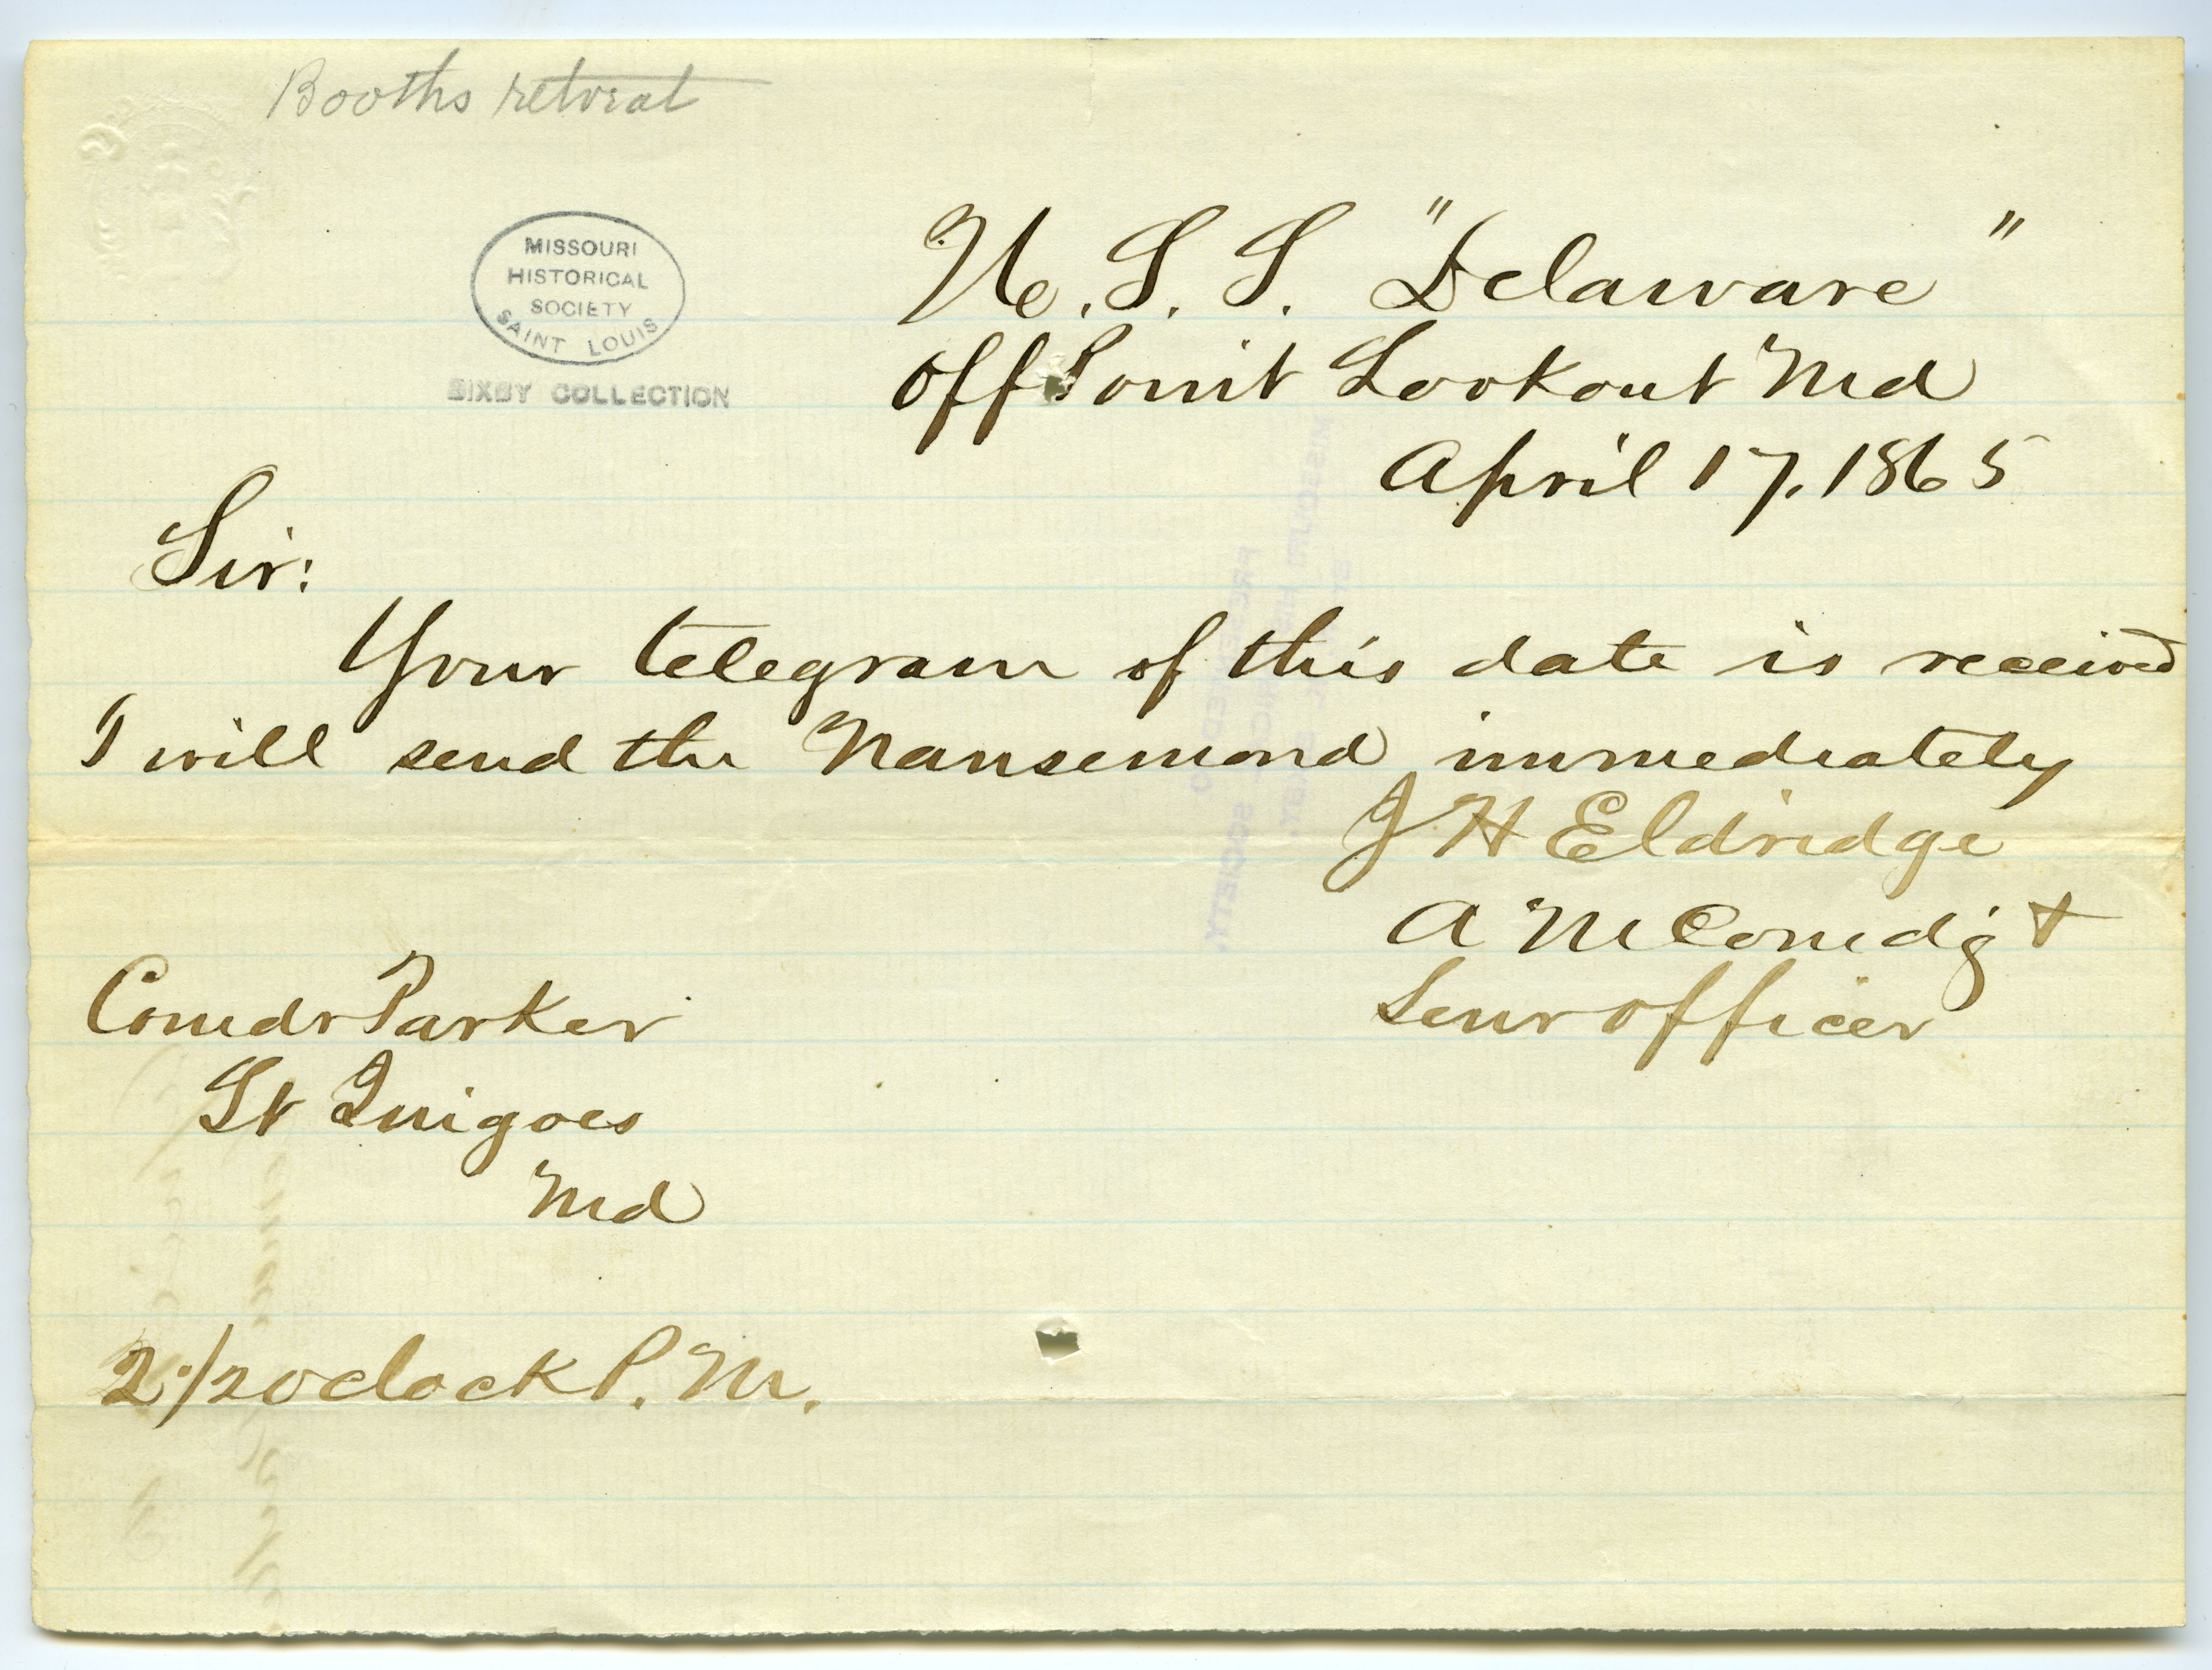 Note signed J.H. Eldridge, U.S.S.